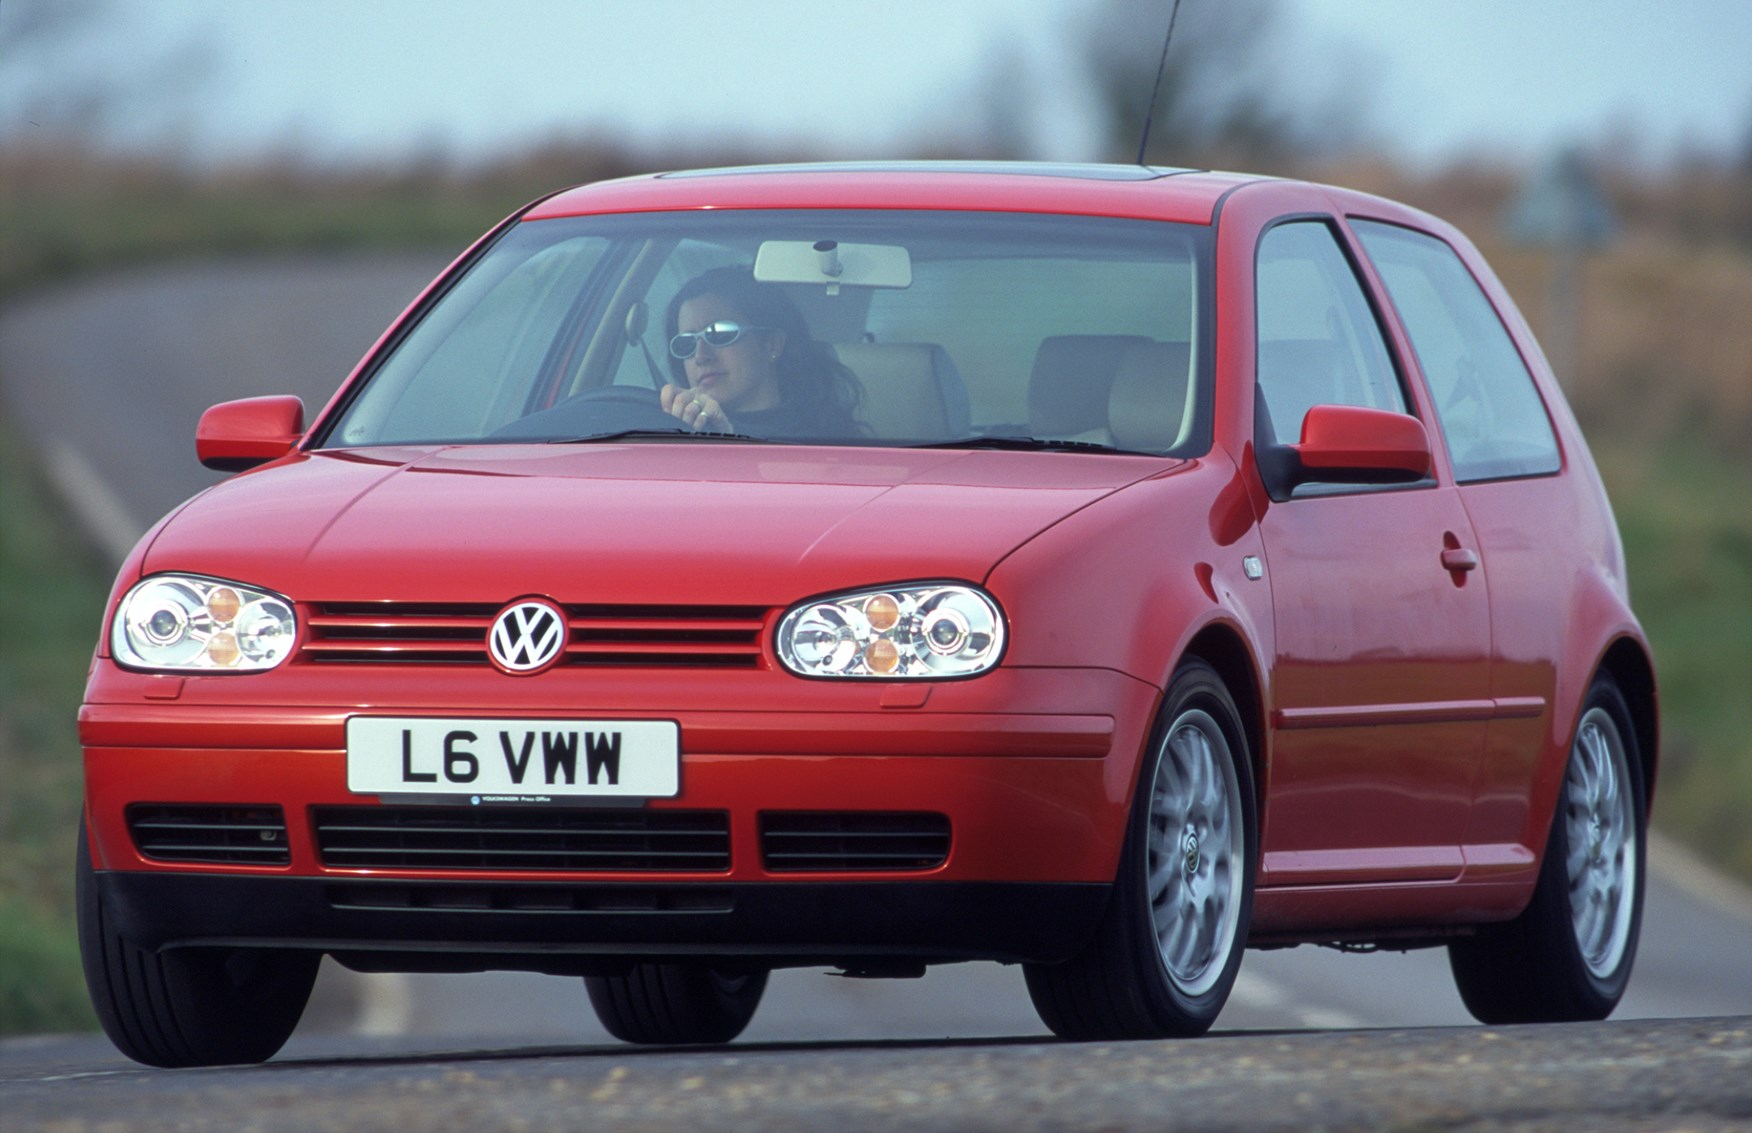 Golf Gtd Review >> Volkswagen Golf Hatchback Review (1997 - 2004) | Parkers